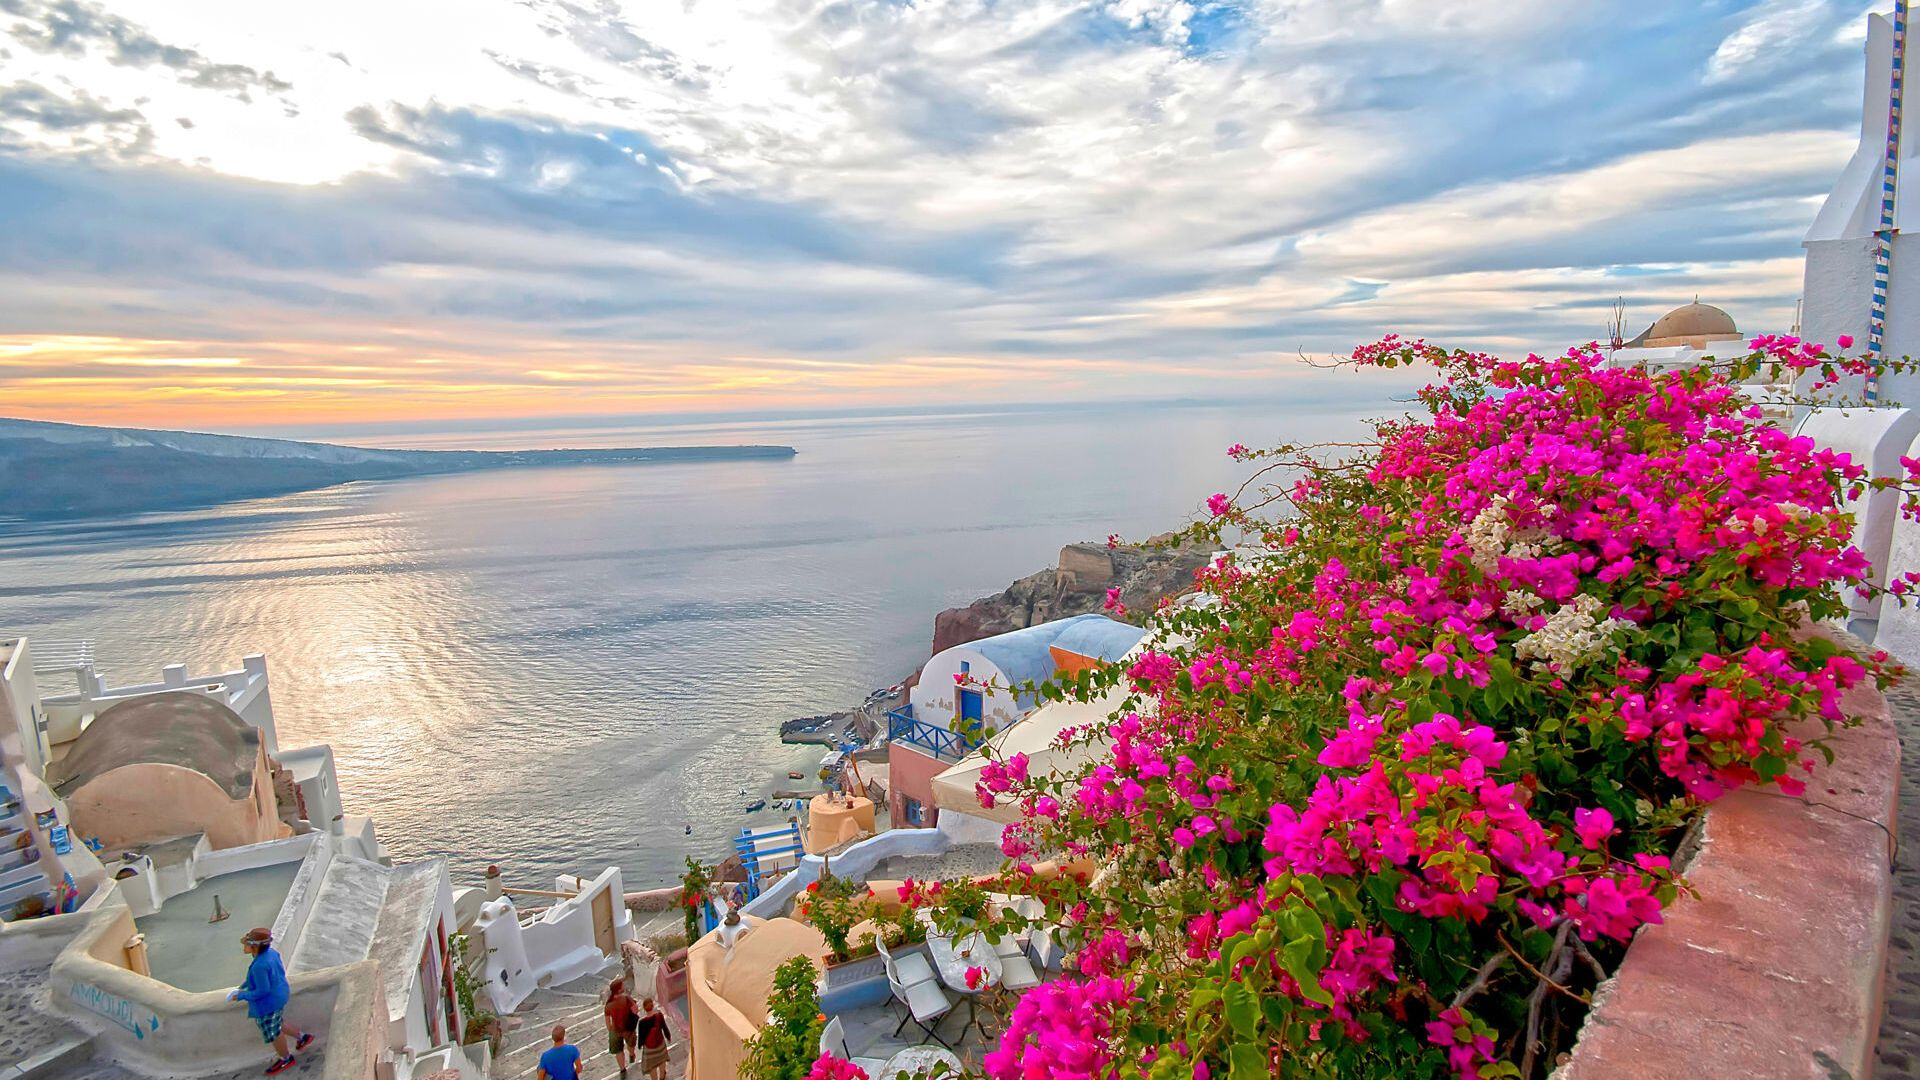 Famous for it's beautiful and romantic sunsets , Oia in Santorini